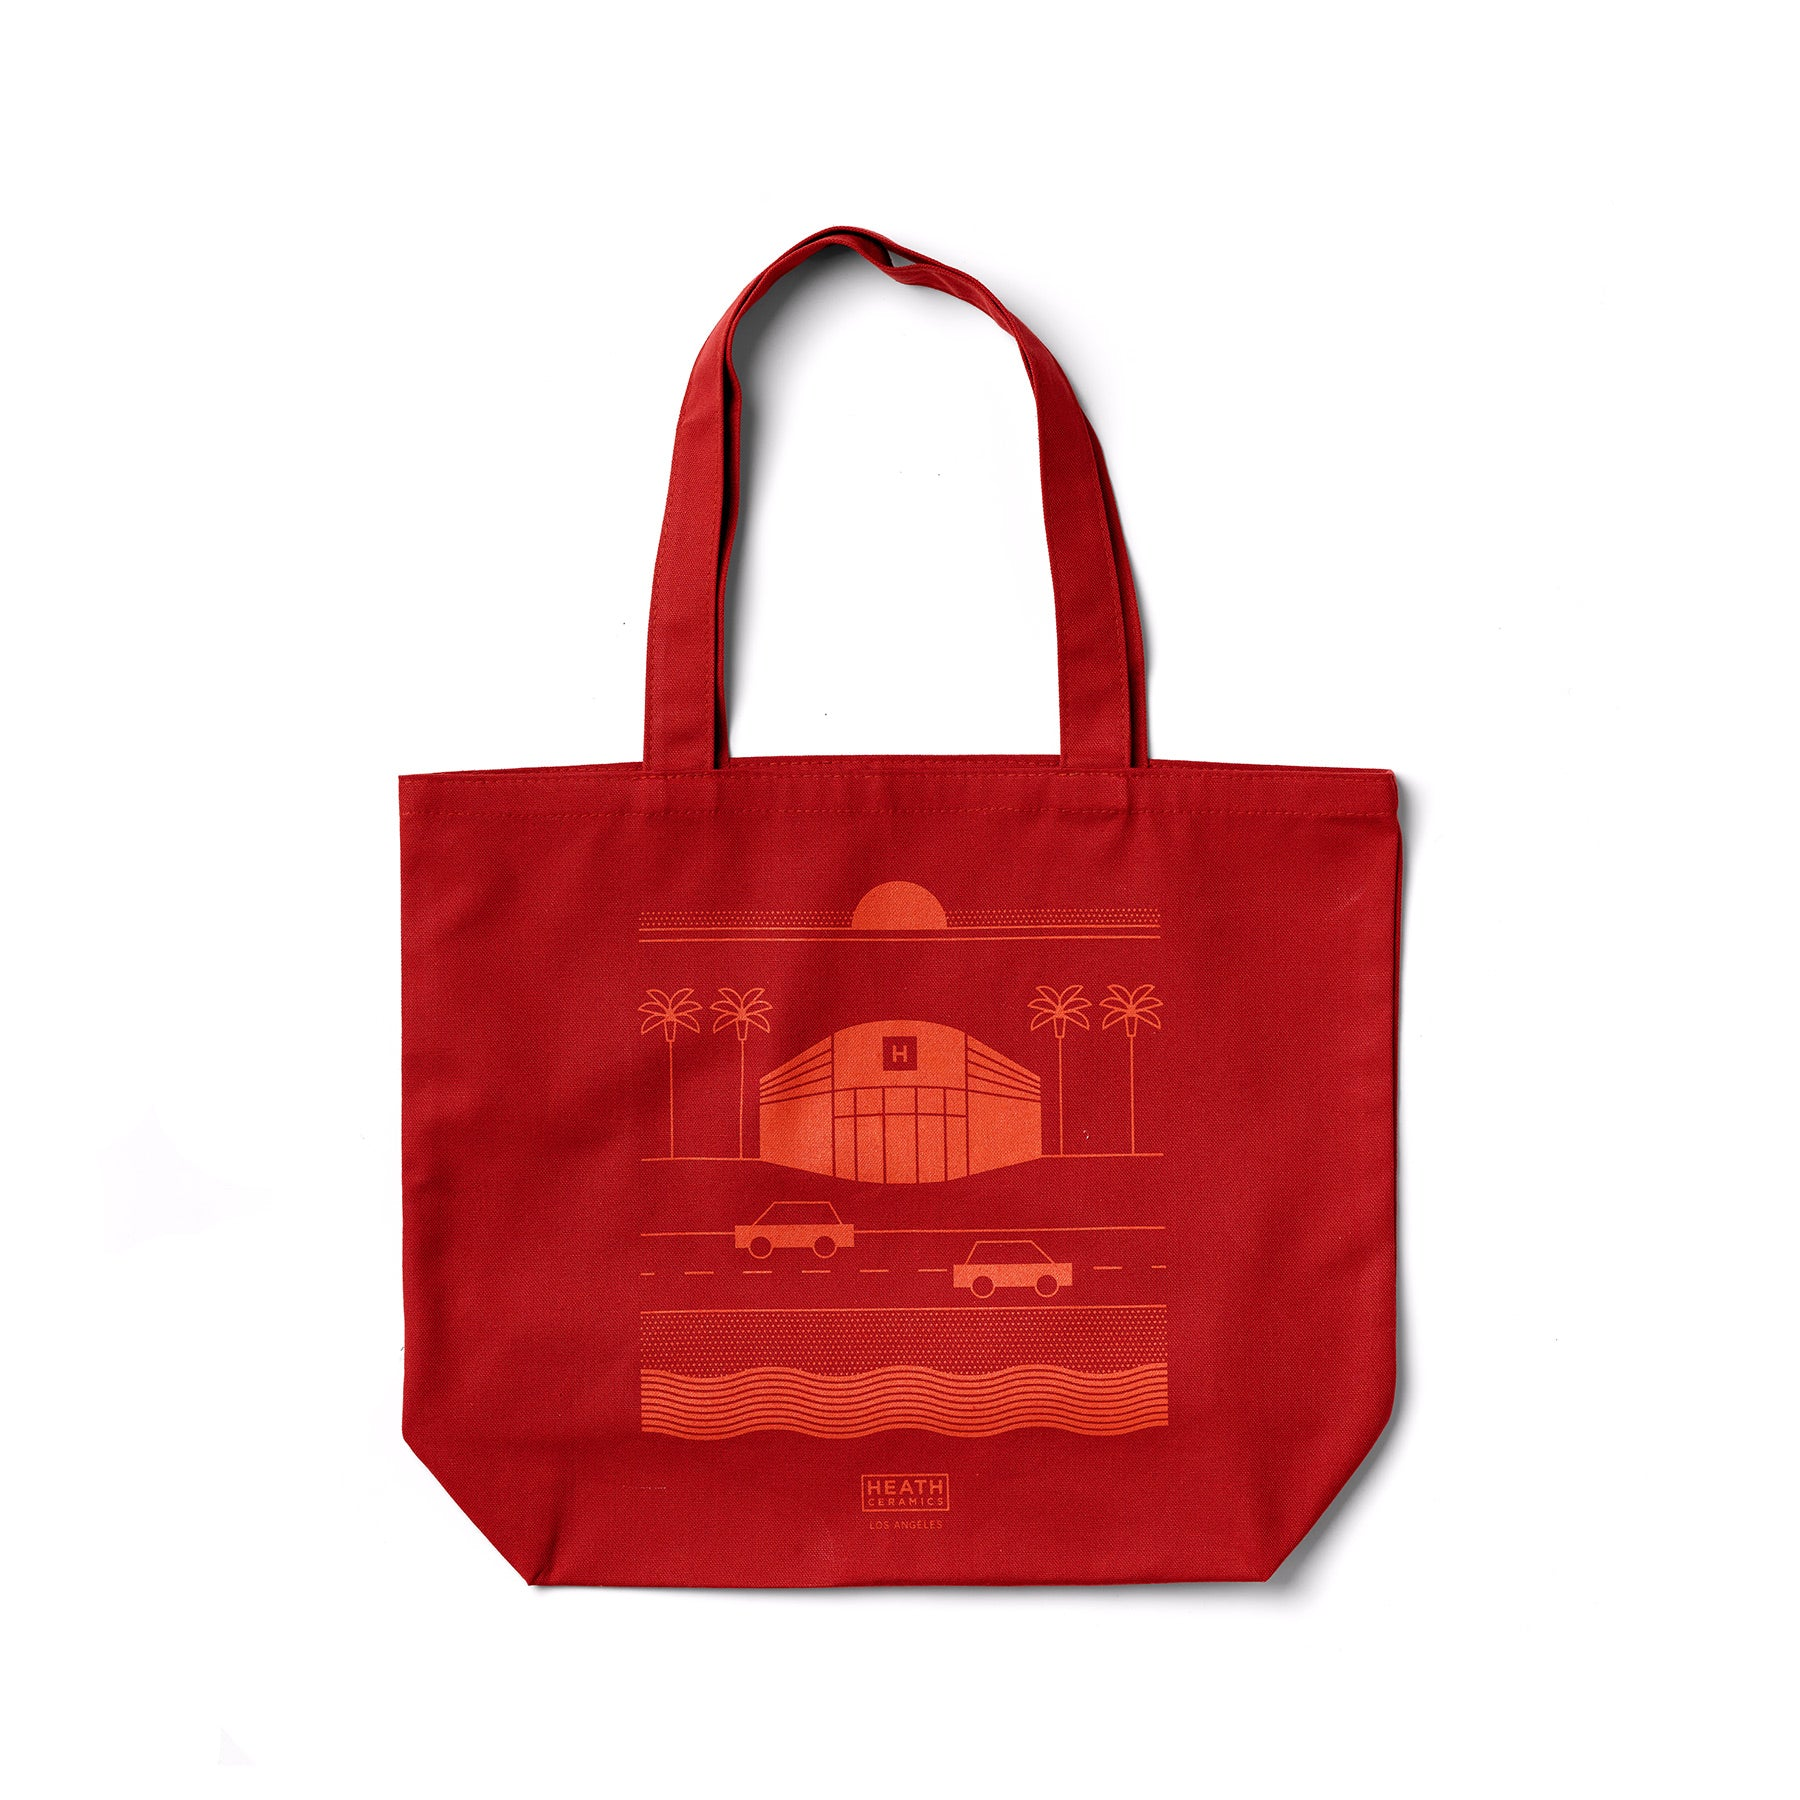 Los Angeles Tote in Red Orange Zoom Image 1